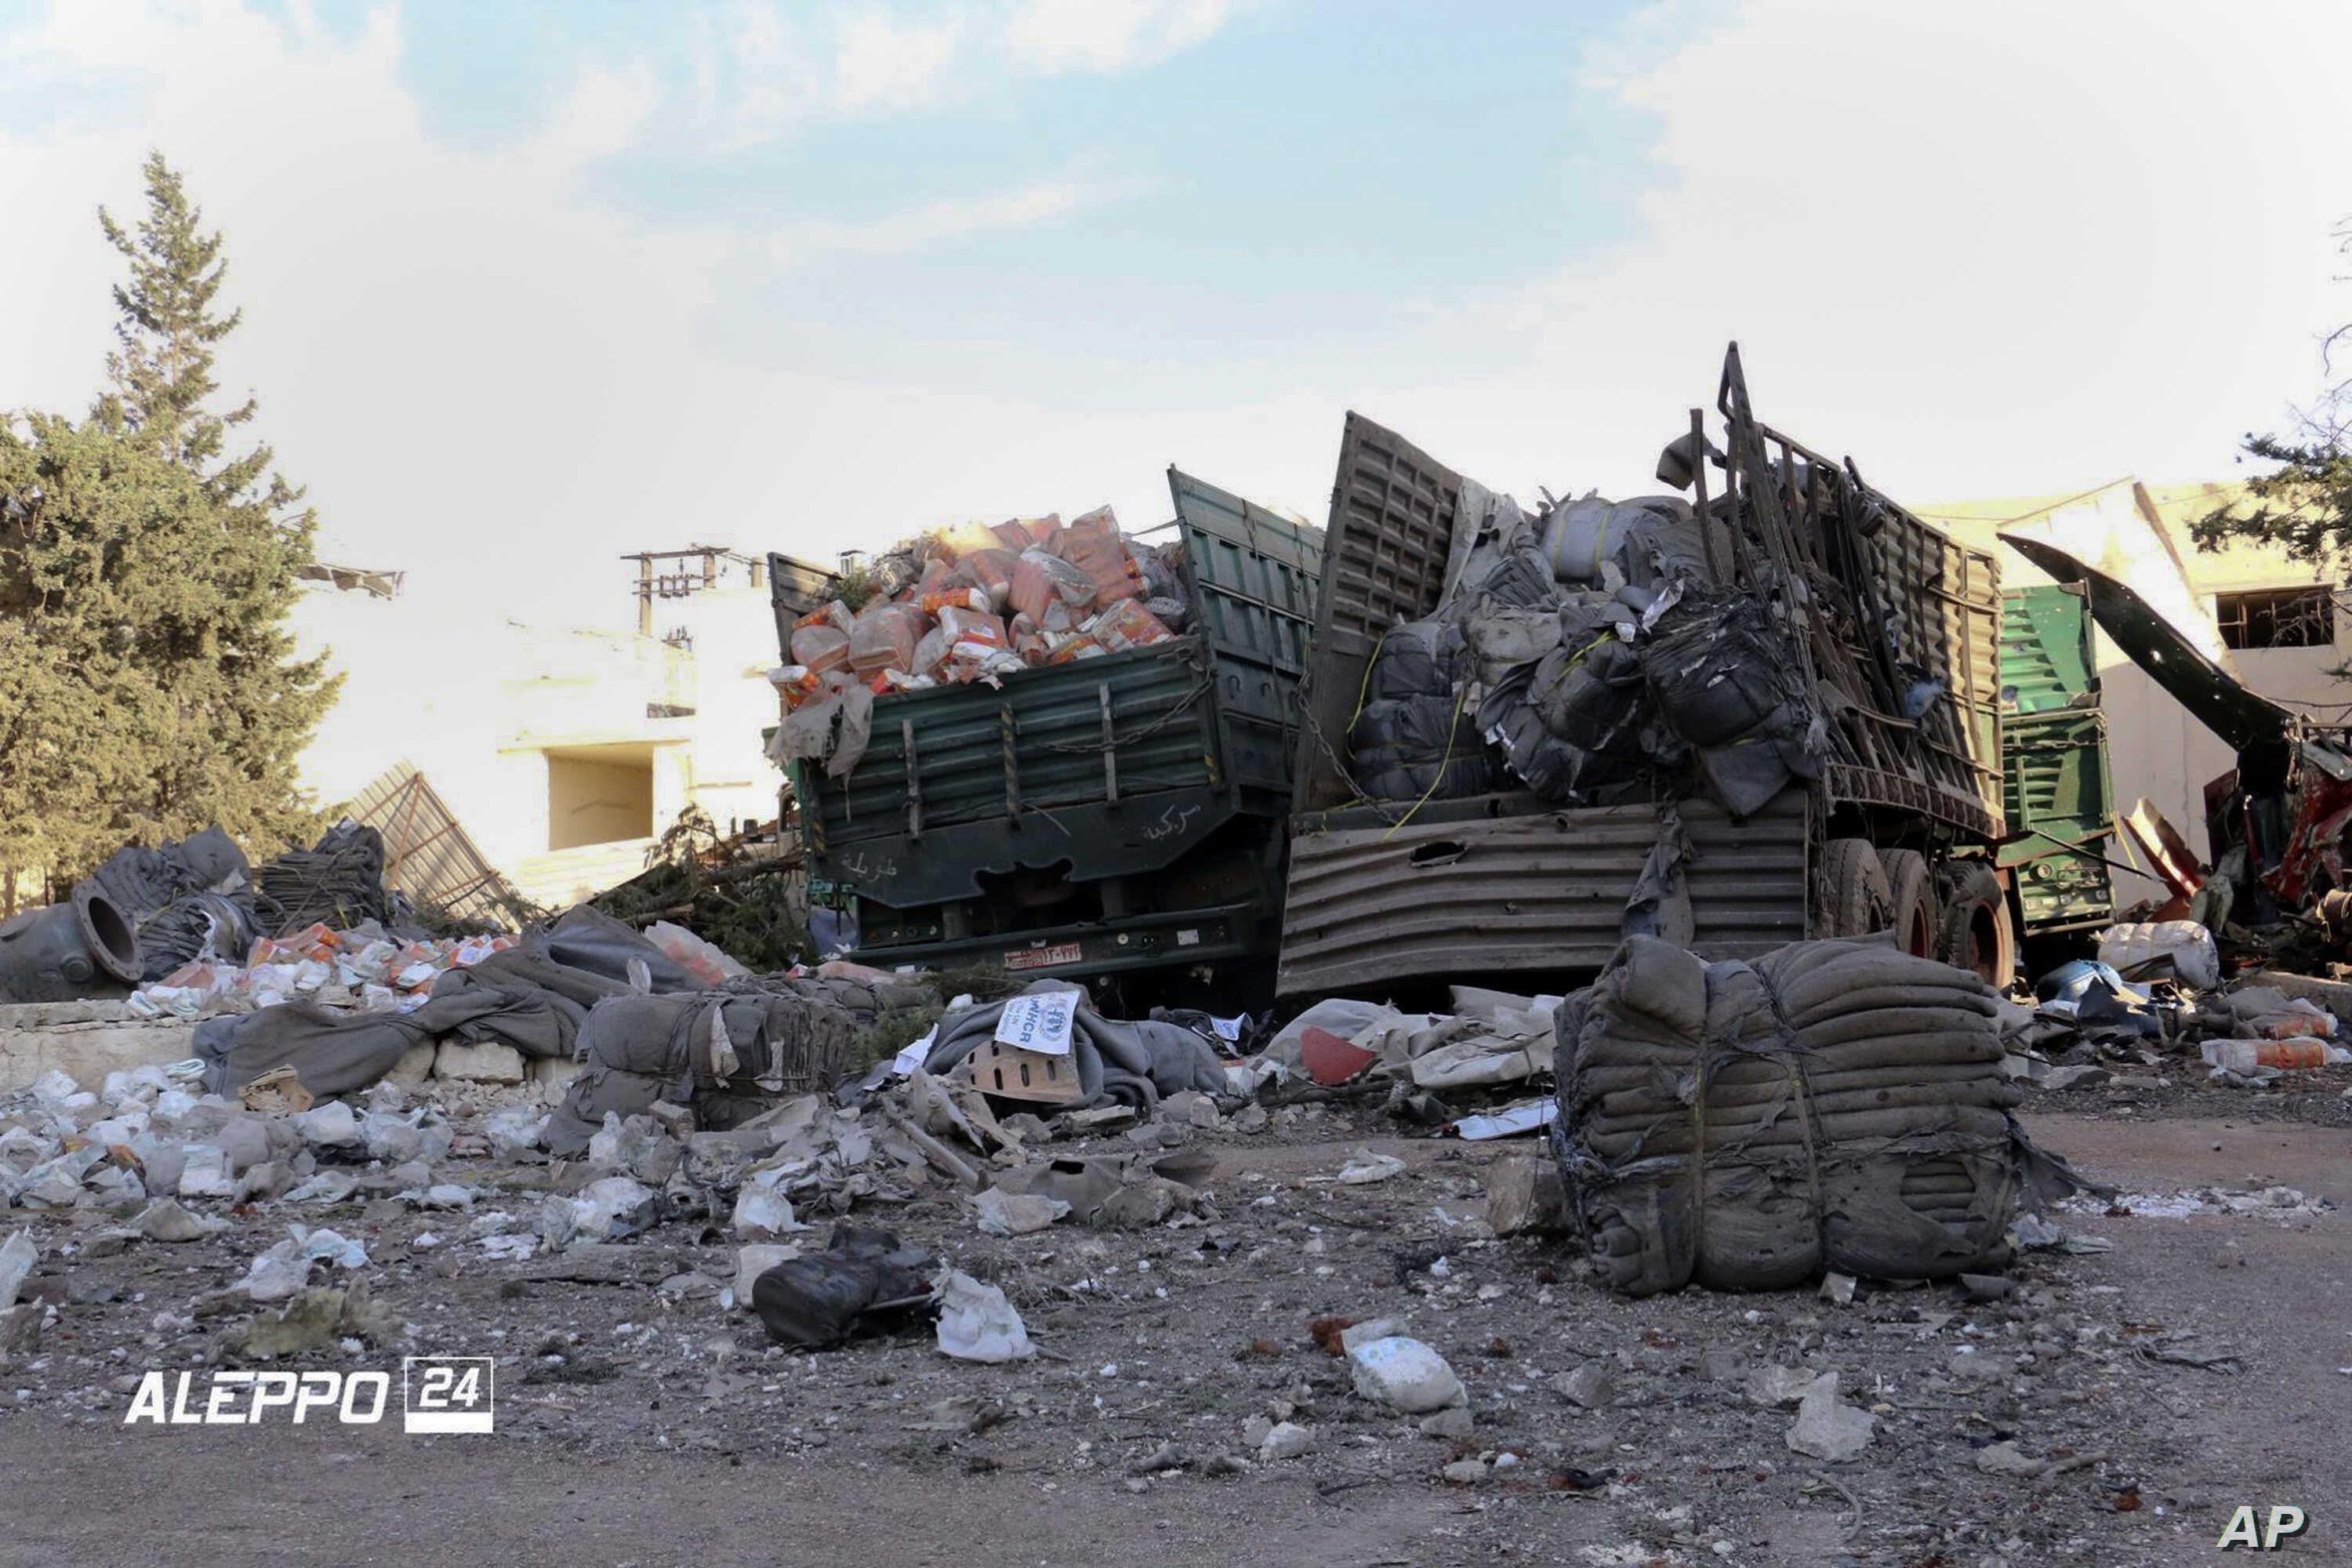 This image provided by the Syrian anti-government group Aleppo 24 news, shows damaged trucks carrying aid, in Aleppo, Syria, Sept. 20, 2016.